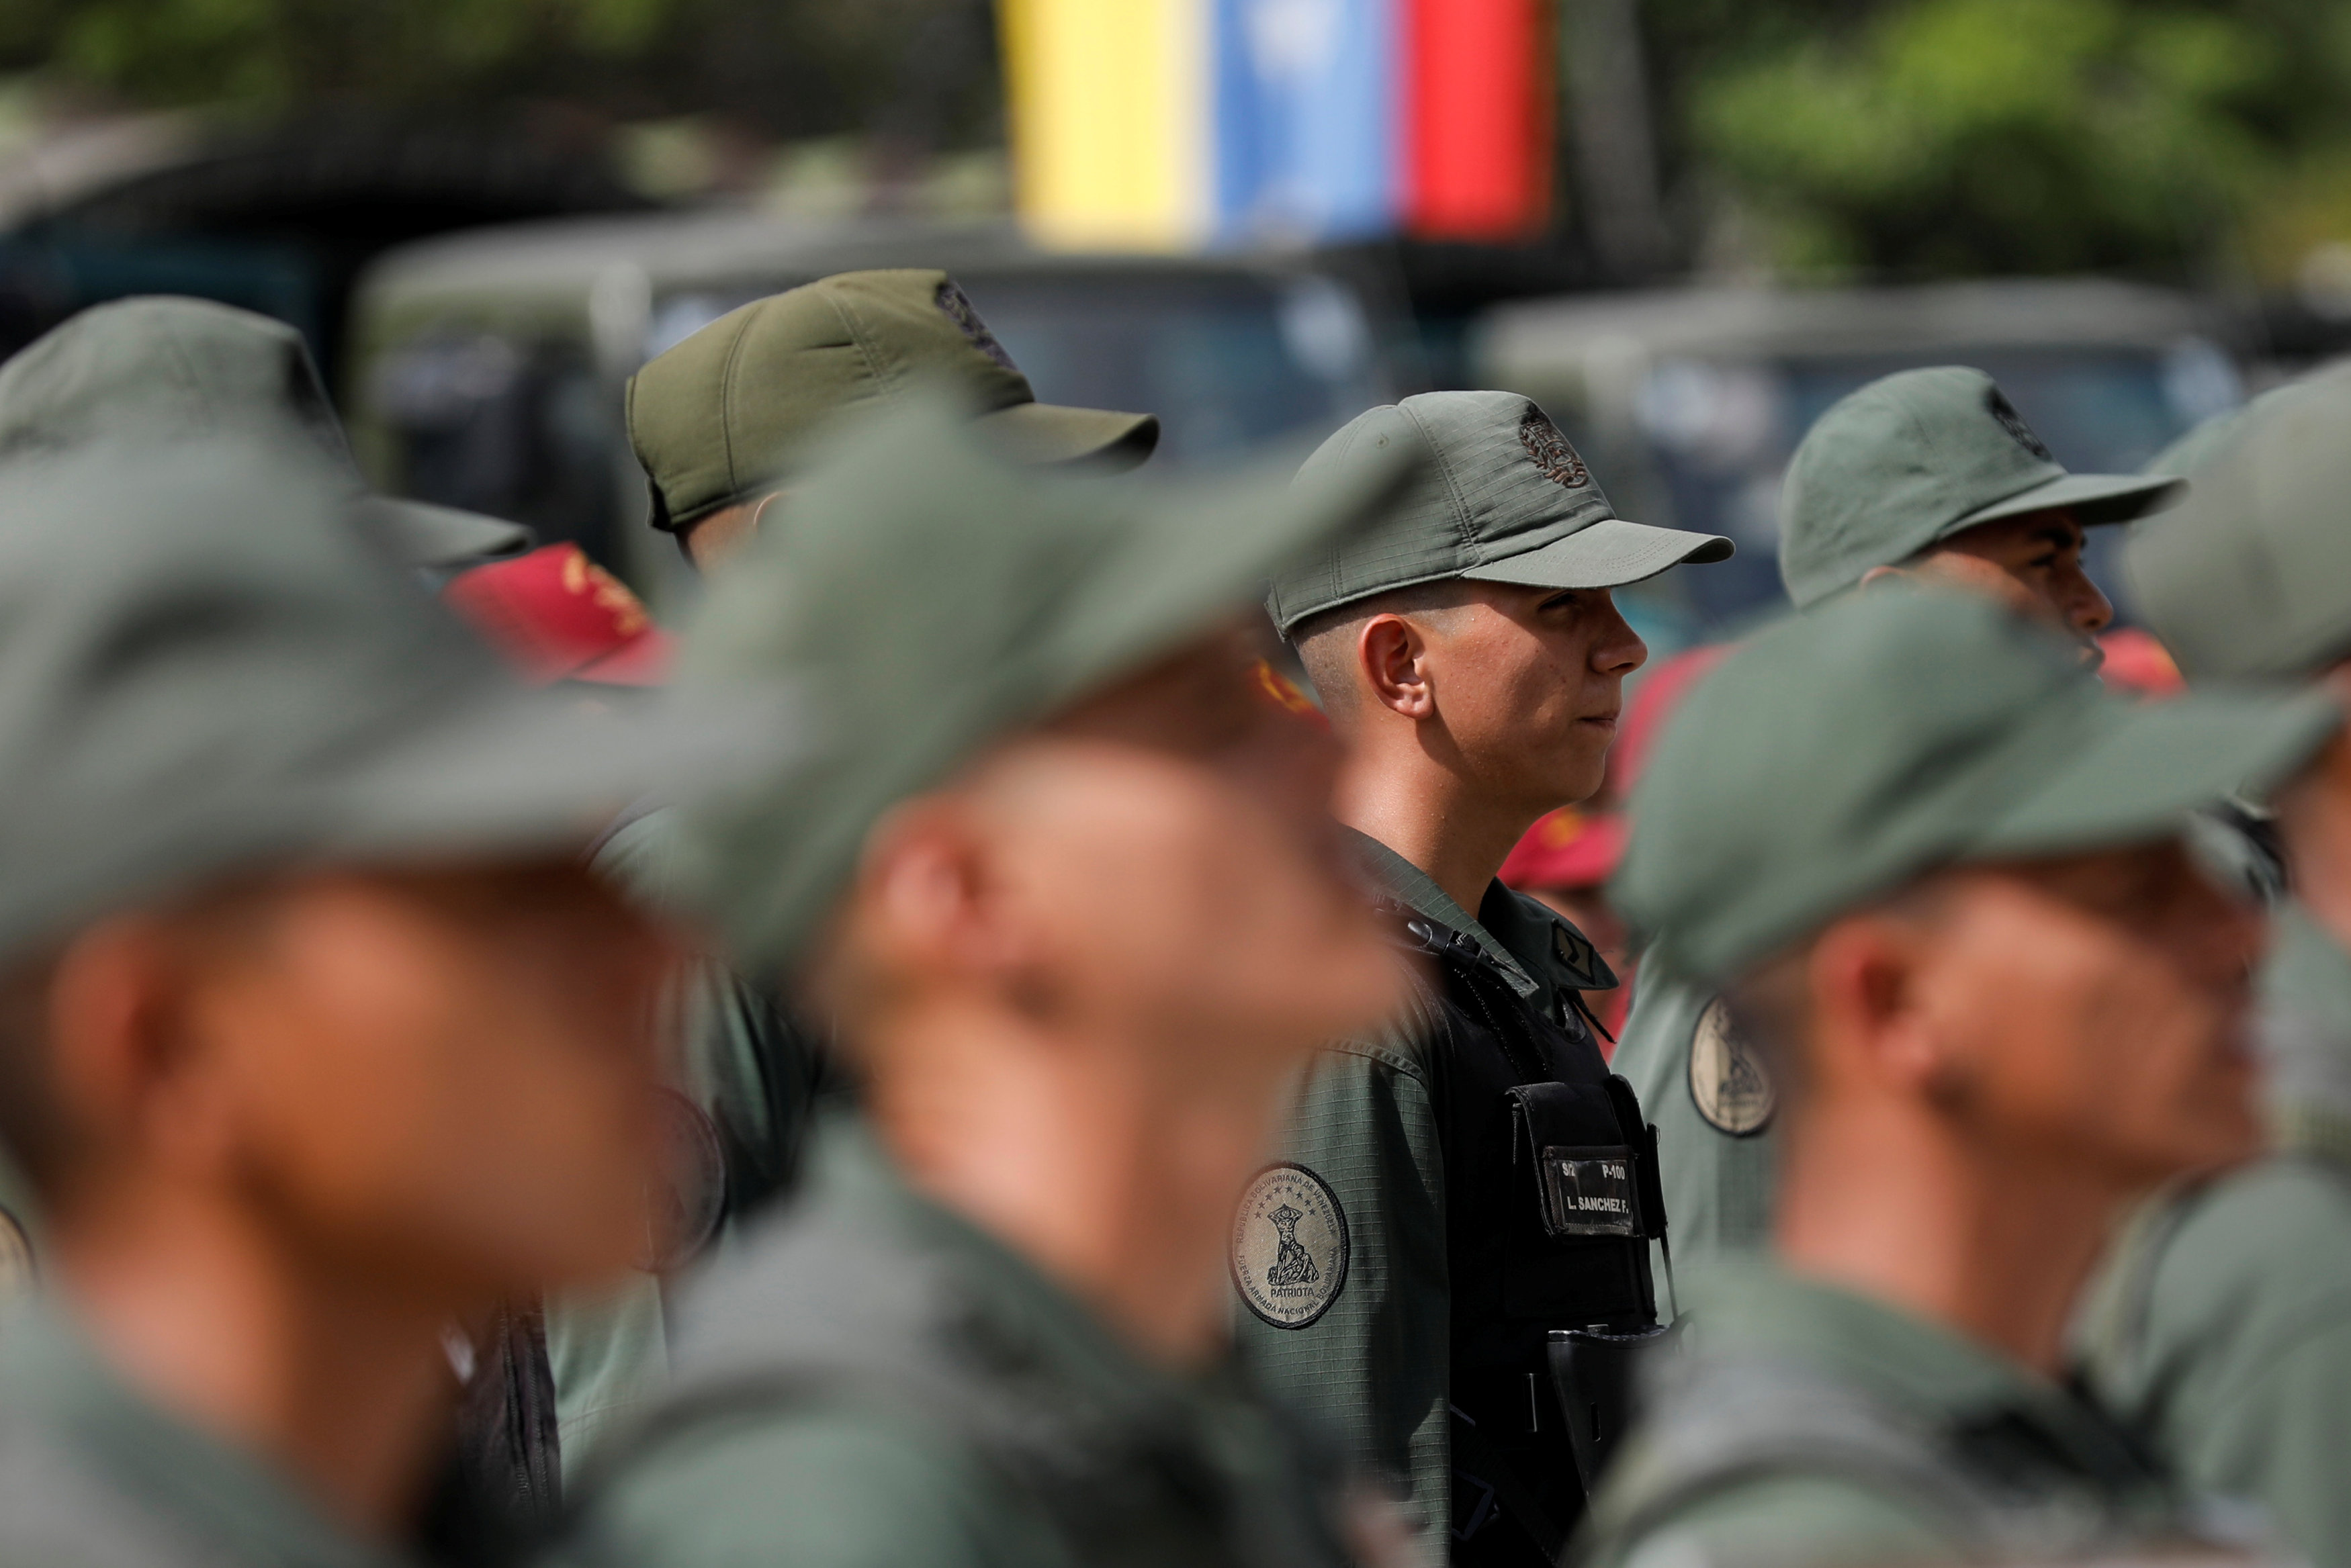 Soldiers stand in formation before the start of a ceremony to kick off the distribution of security forcers and voting materials to be used in the upcoming presidential elections, at Fort Tiuna military base in Caracas, Venezuela May 15, 2018. Pictures taken on May 15, 2018. REUTERS/Carlos Jasso